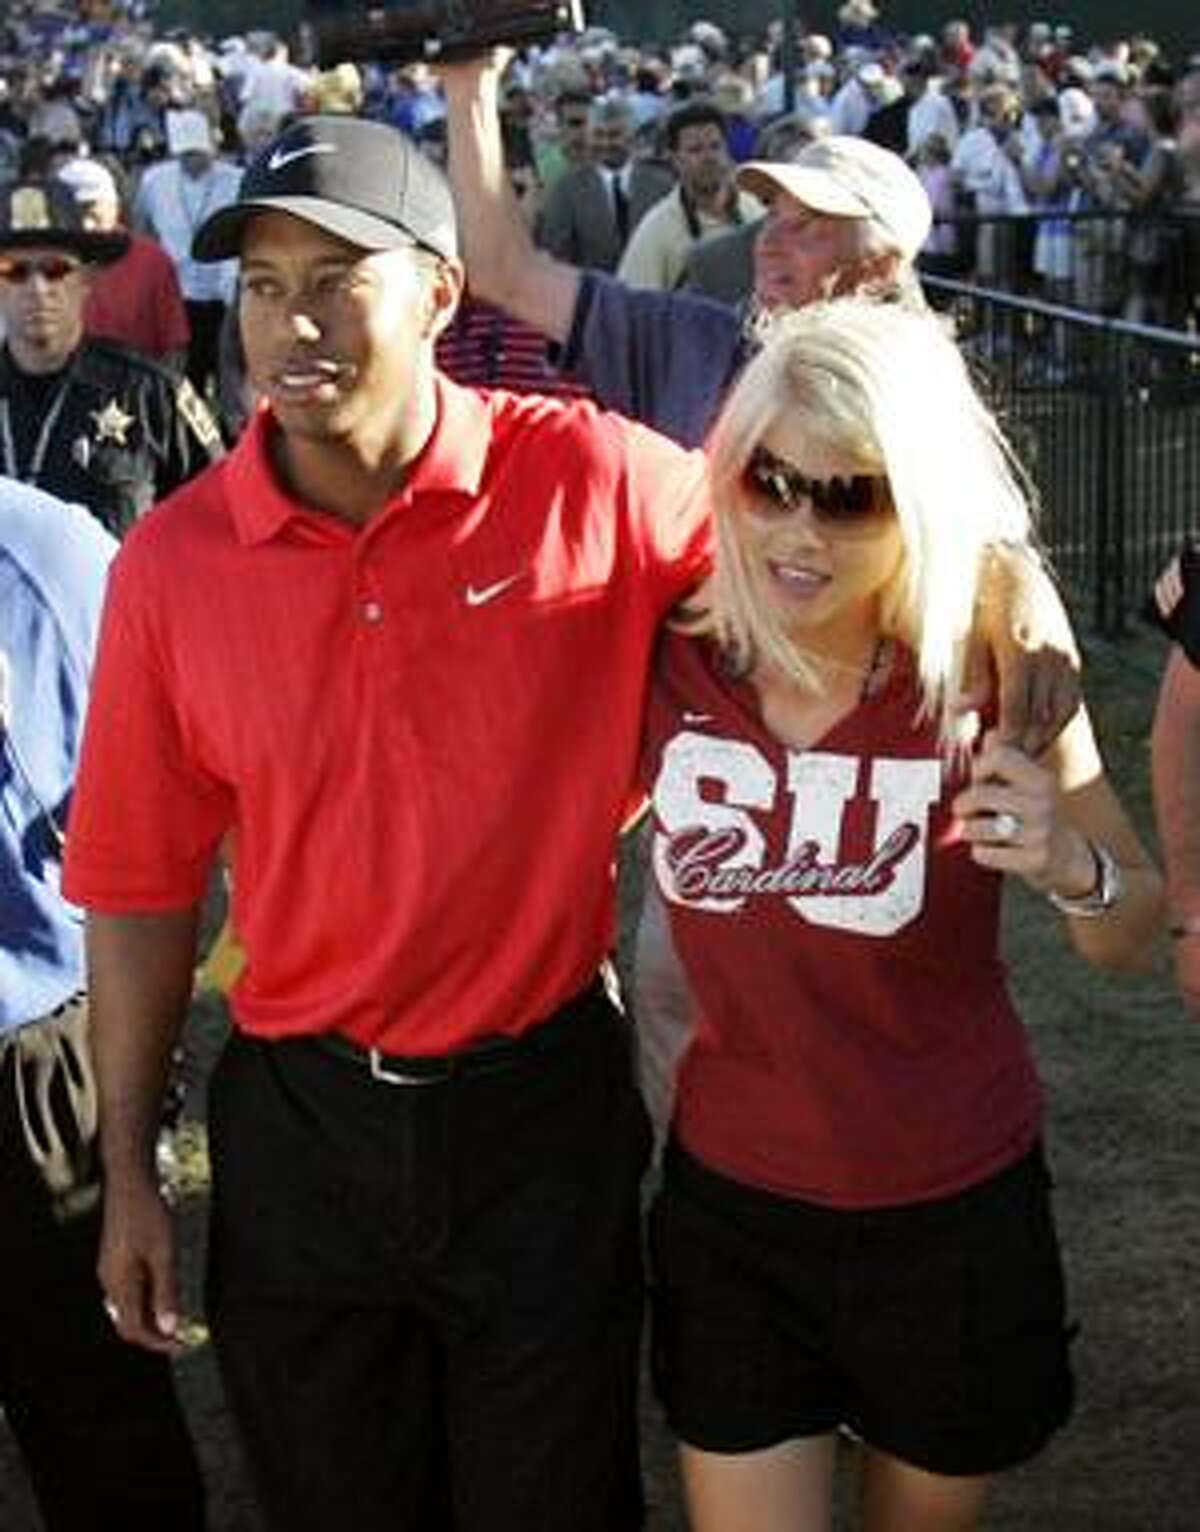 In this Aug. 20, 2006, file photo, Tiger Woods celebrates with wife Elin Nordegren after winning the 88th PGA Championship golf tournament at Medinah Country Club in Medinah, Ill. Woods and his wife are officially divorced. The lawyers for Woods and Nordegren said in a statement that the divorce became official Monday, in Bay County Circuit Court, in Panama City,Fla. (AP Photo/Rob Carr, File)